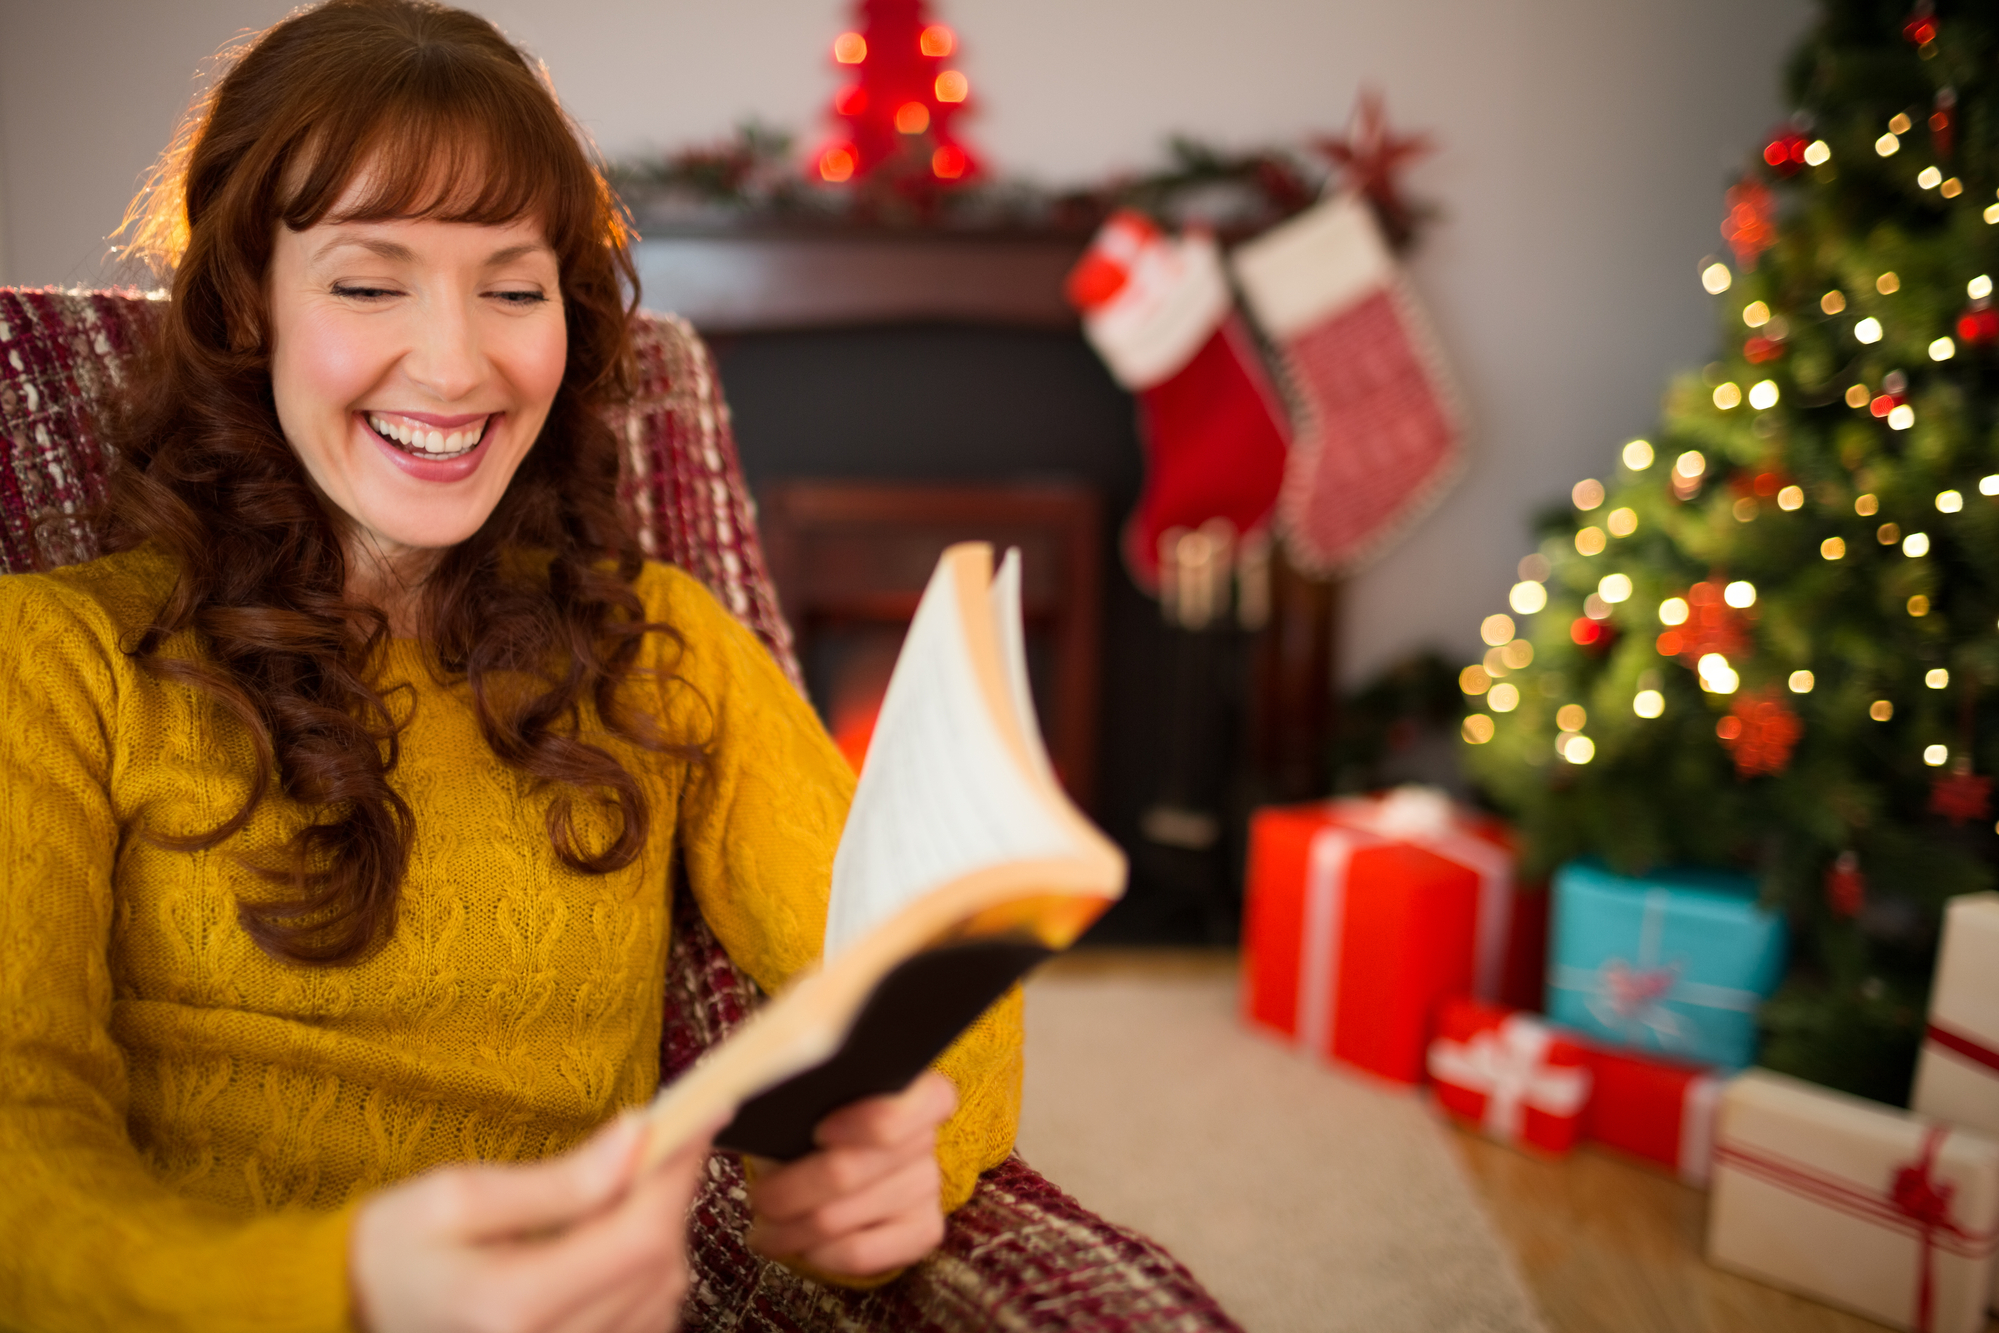 How to Rejoice in the Midst of a Weary World This Advent